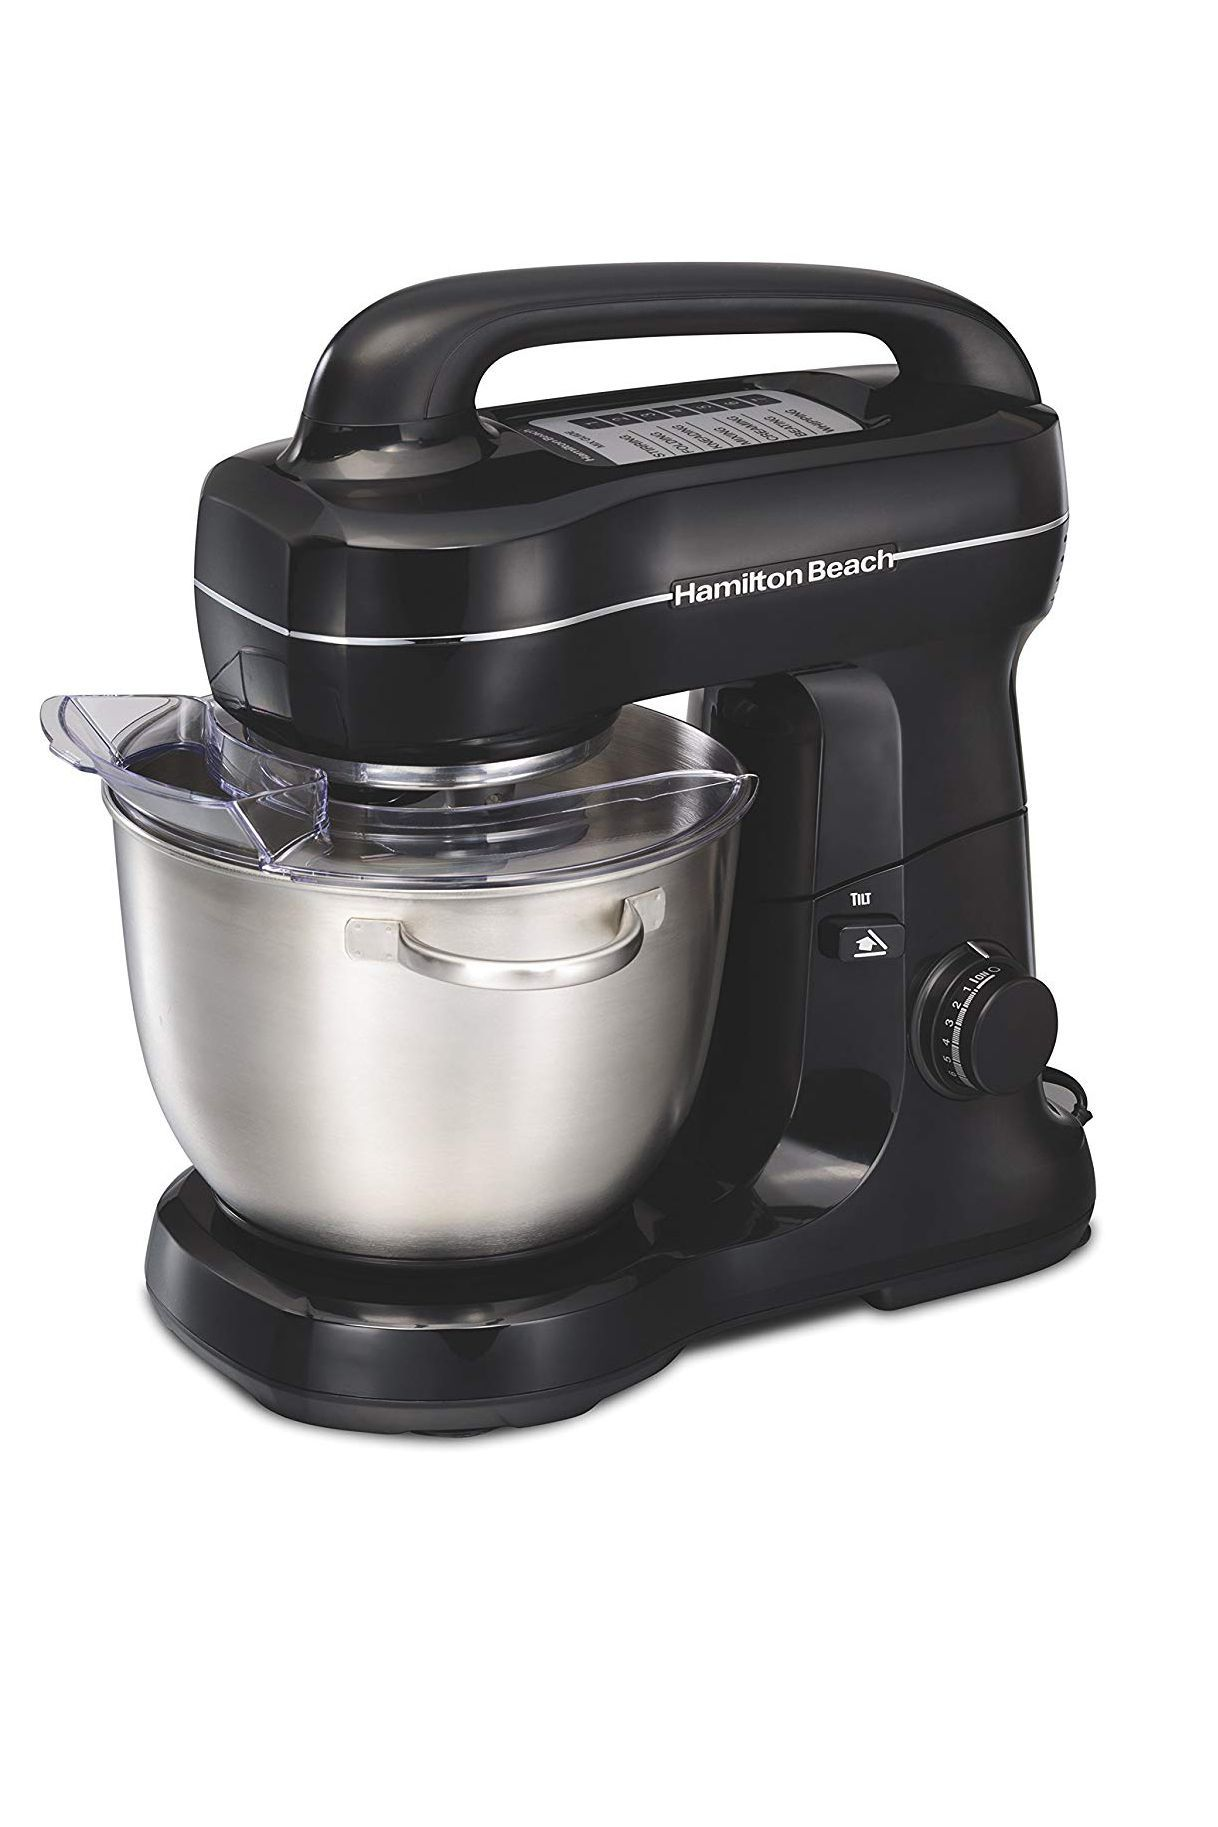 6 Best Stand Mixer Reviews 2019 - Top Rated Electric Stand Mixers Ultra Heavy Duty Kitchenaid Stand Mixer on orange stand mixer, heavy duty hand mixer, sunbeam stand mixer, heavy duty food storage, cuisinart stand mixer, heavy duty home, heavy duty mixer lift, viking stand mixer, heavy duty car, best heavy duty mixer, kohl's kitchenaid mixer, heavy duty kitchen, 10 quart stand mixer, heavy duty entertainment, heavy duty luxury, heavy duty indoor grill, top heavy duty stand mixer, heavy duty camera, red kitchenaid mixer, cooks 4 5 qt stand mixer,